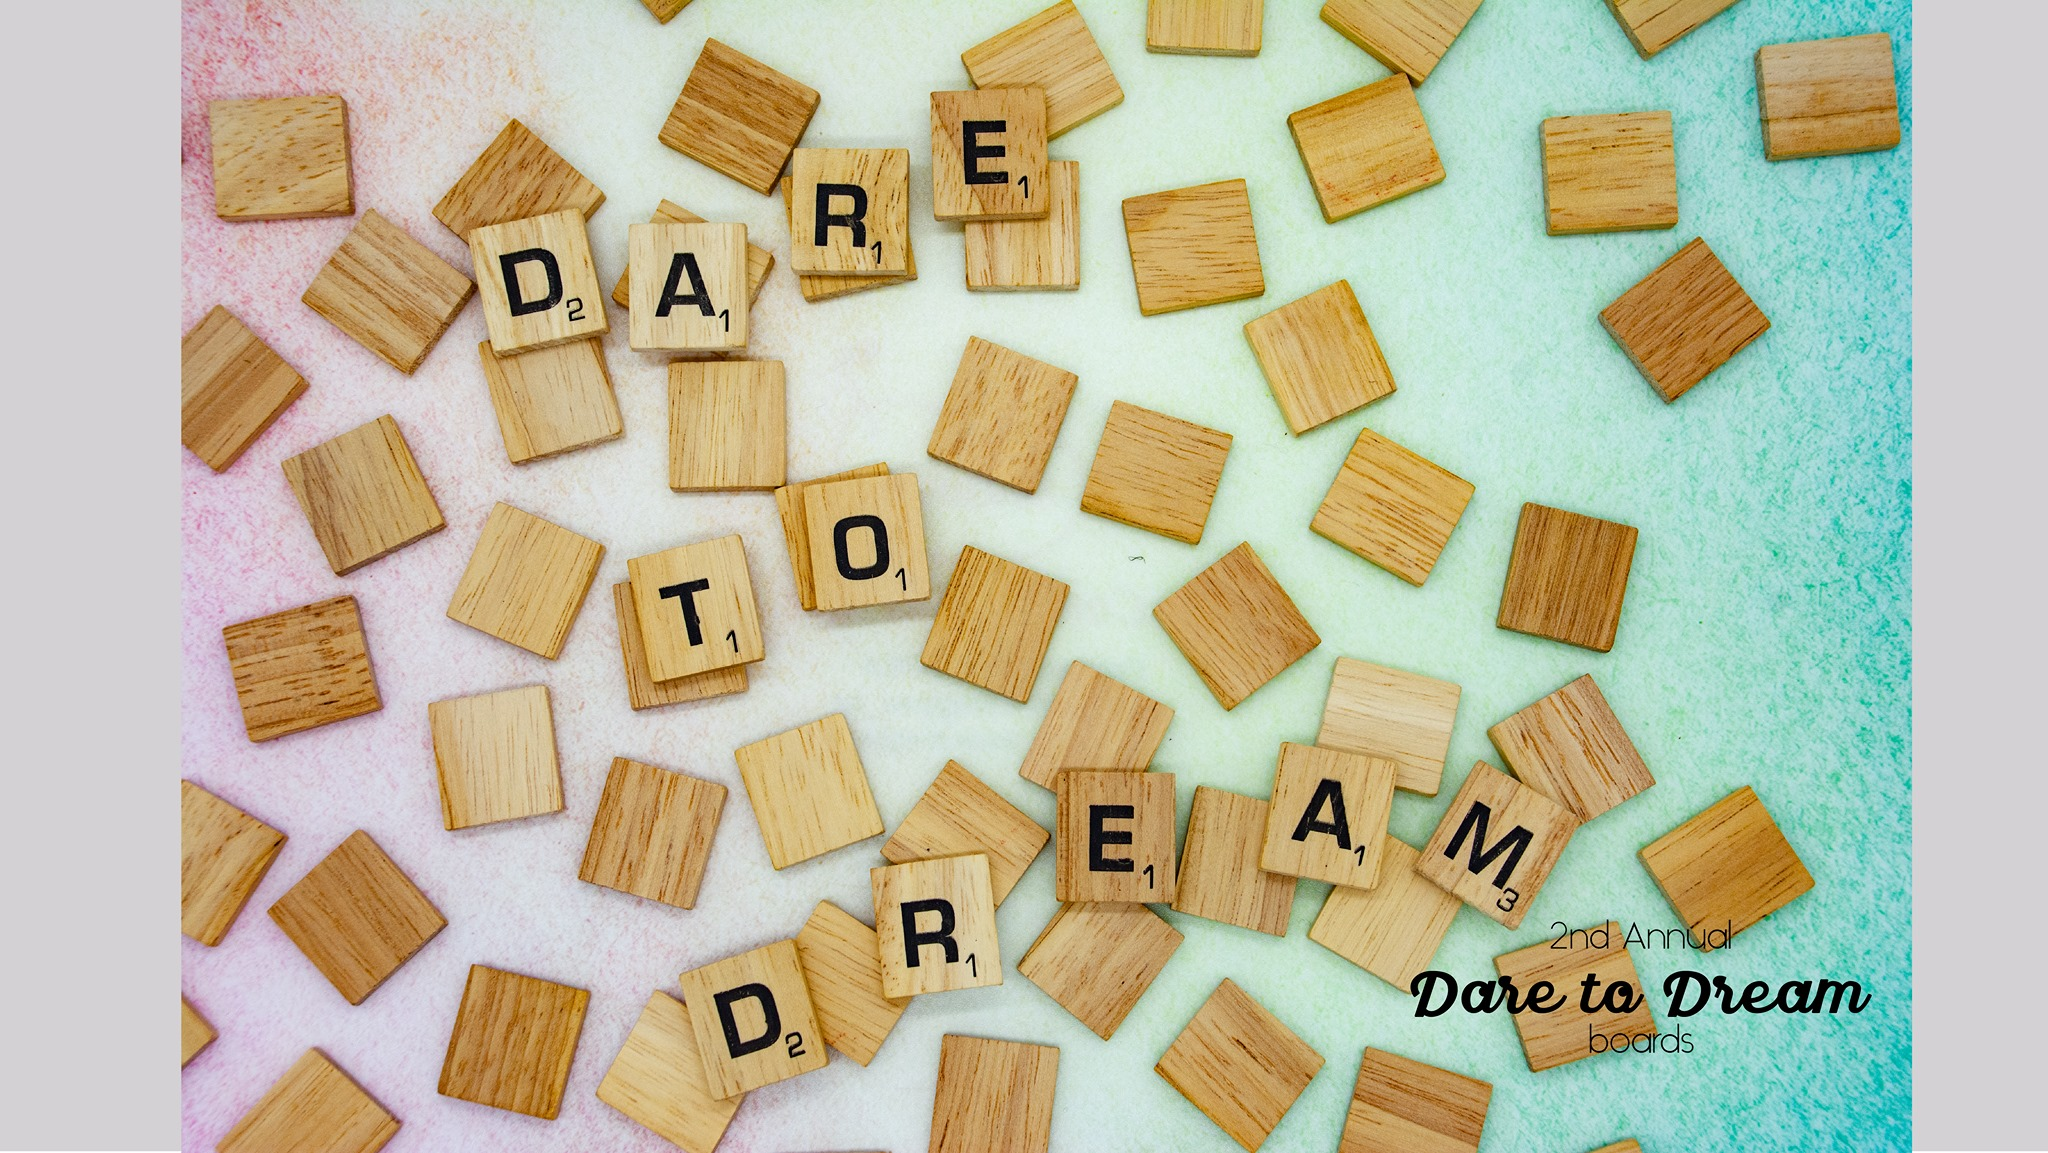 2nd Annual Dare to Dream boards